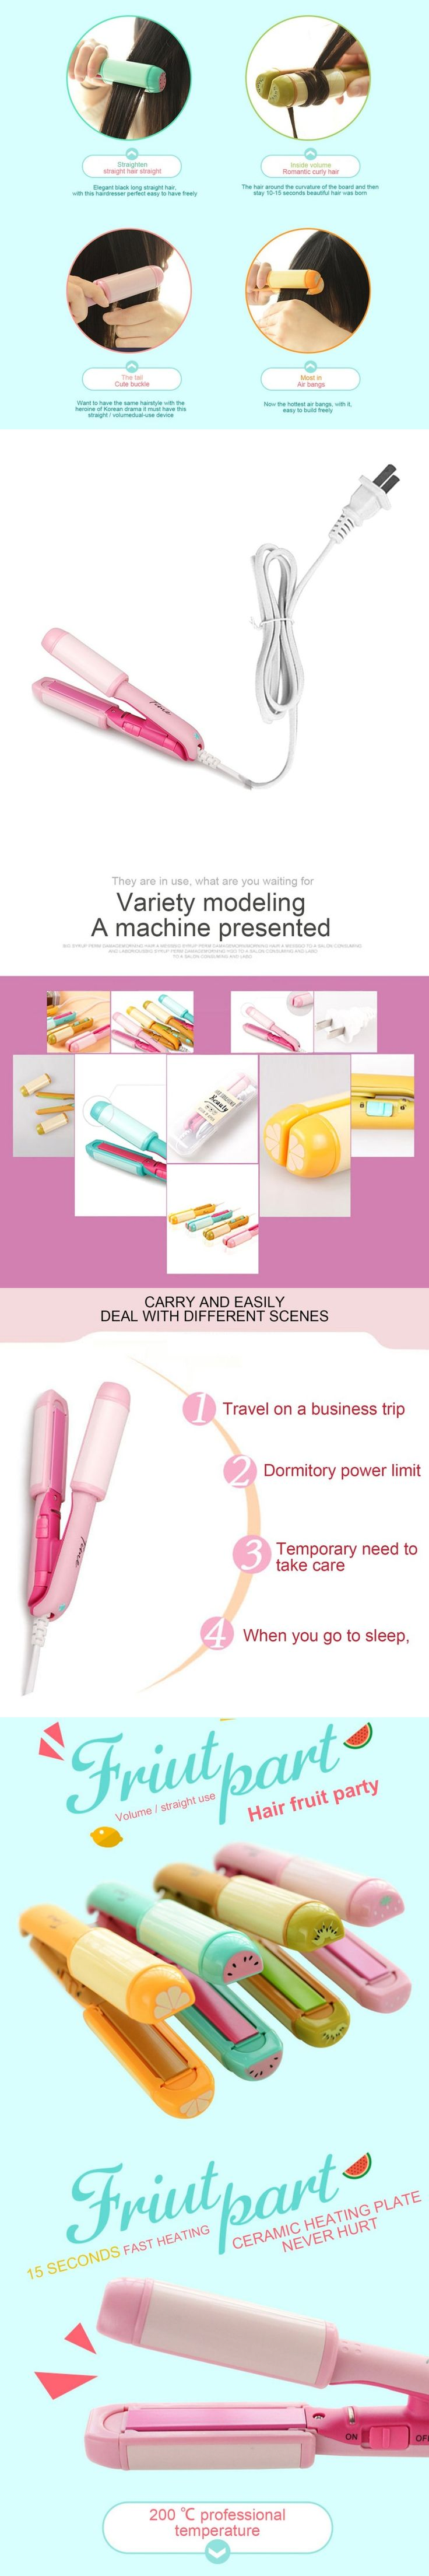 1 pcs Mini Cute Fruit Style Straightening and Curling Irons Portable Hair Curler Electric Hair Straightener 220V new